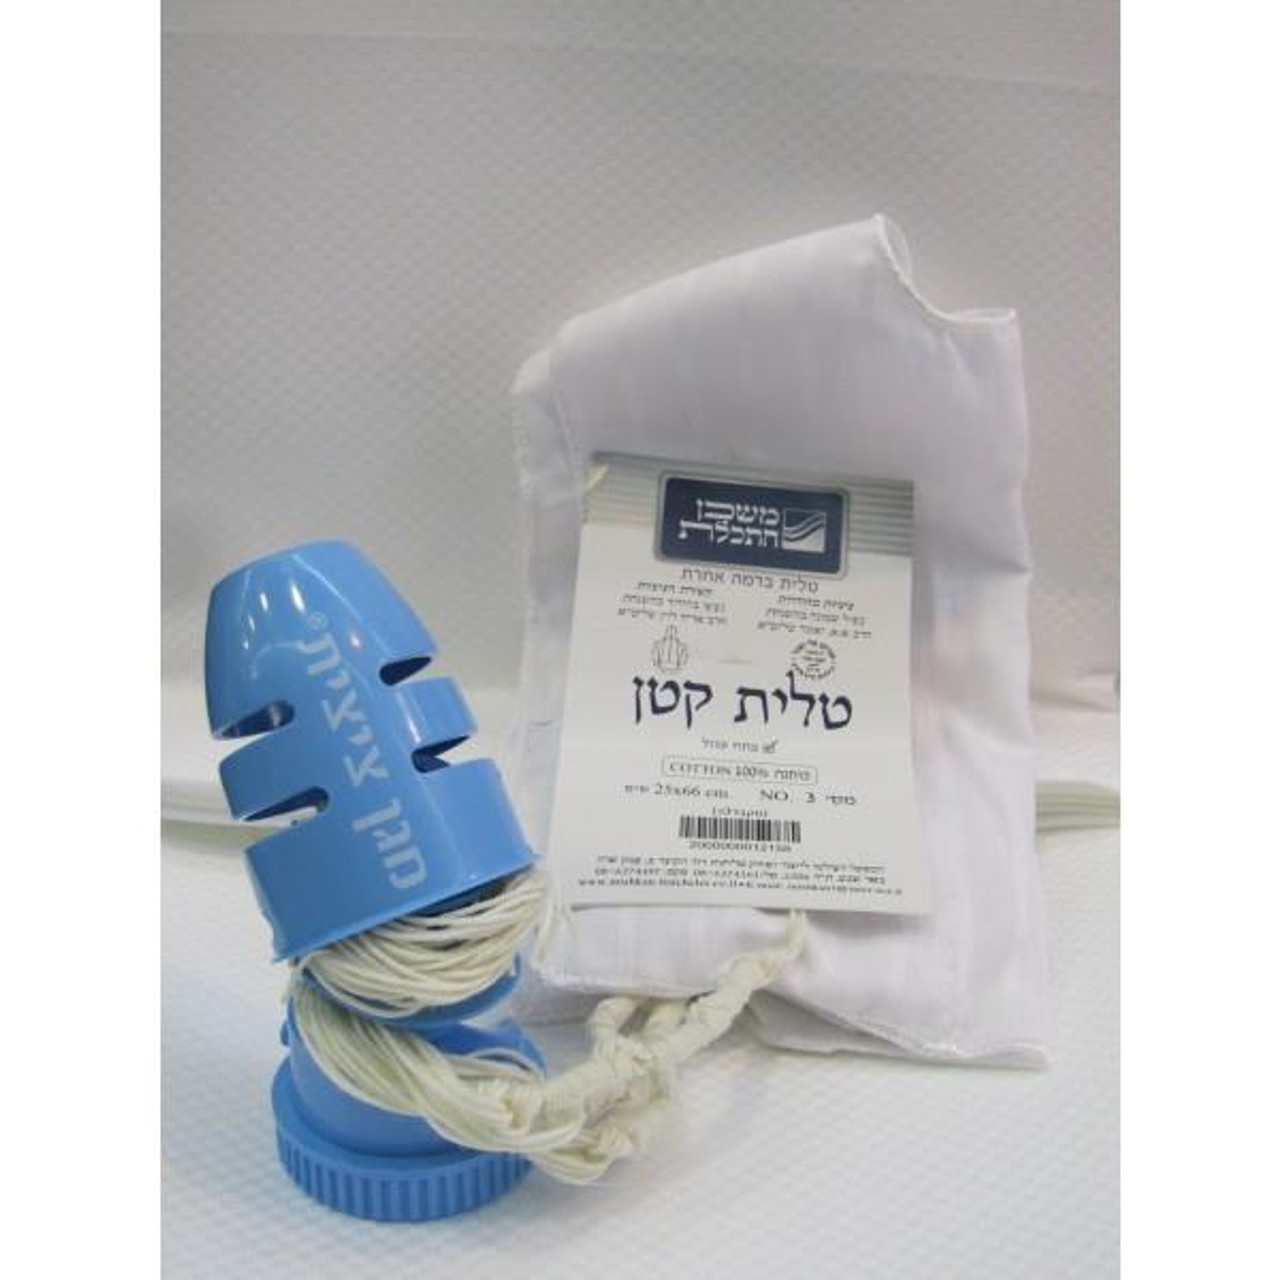 FringeGuard Tzitzit Washing Device